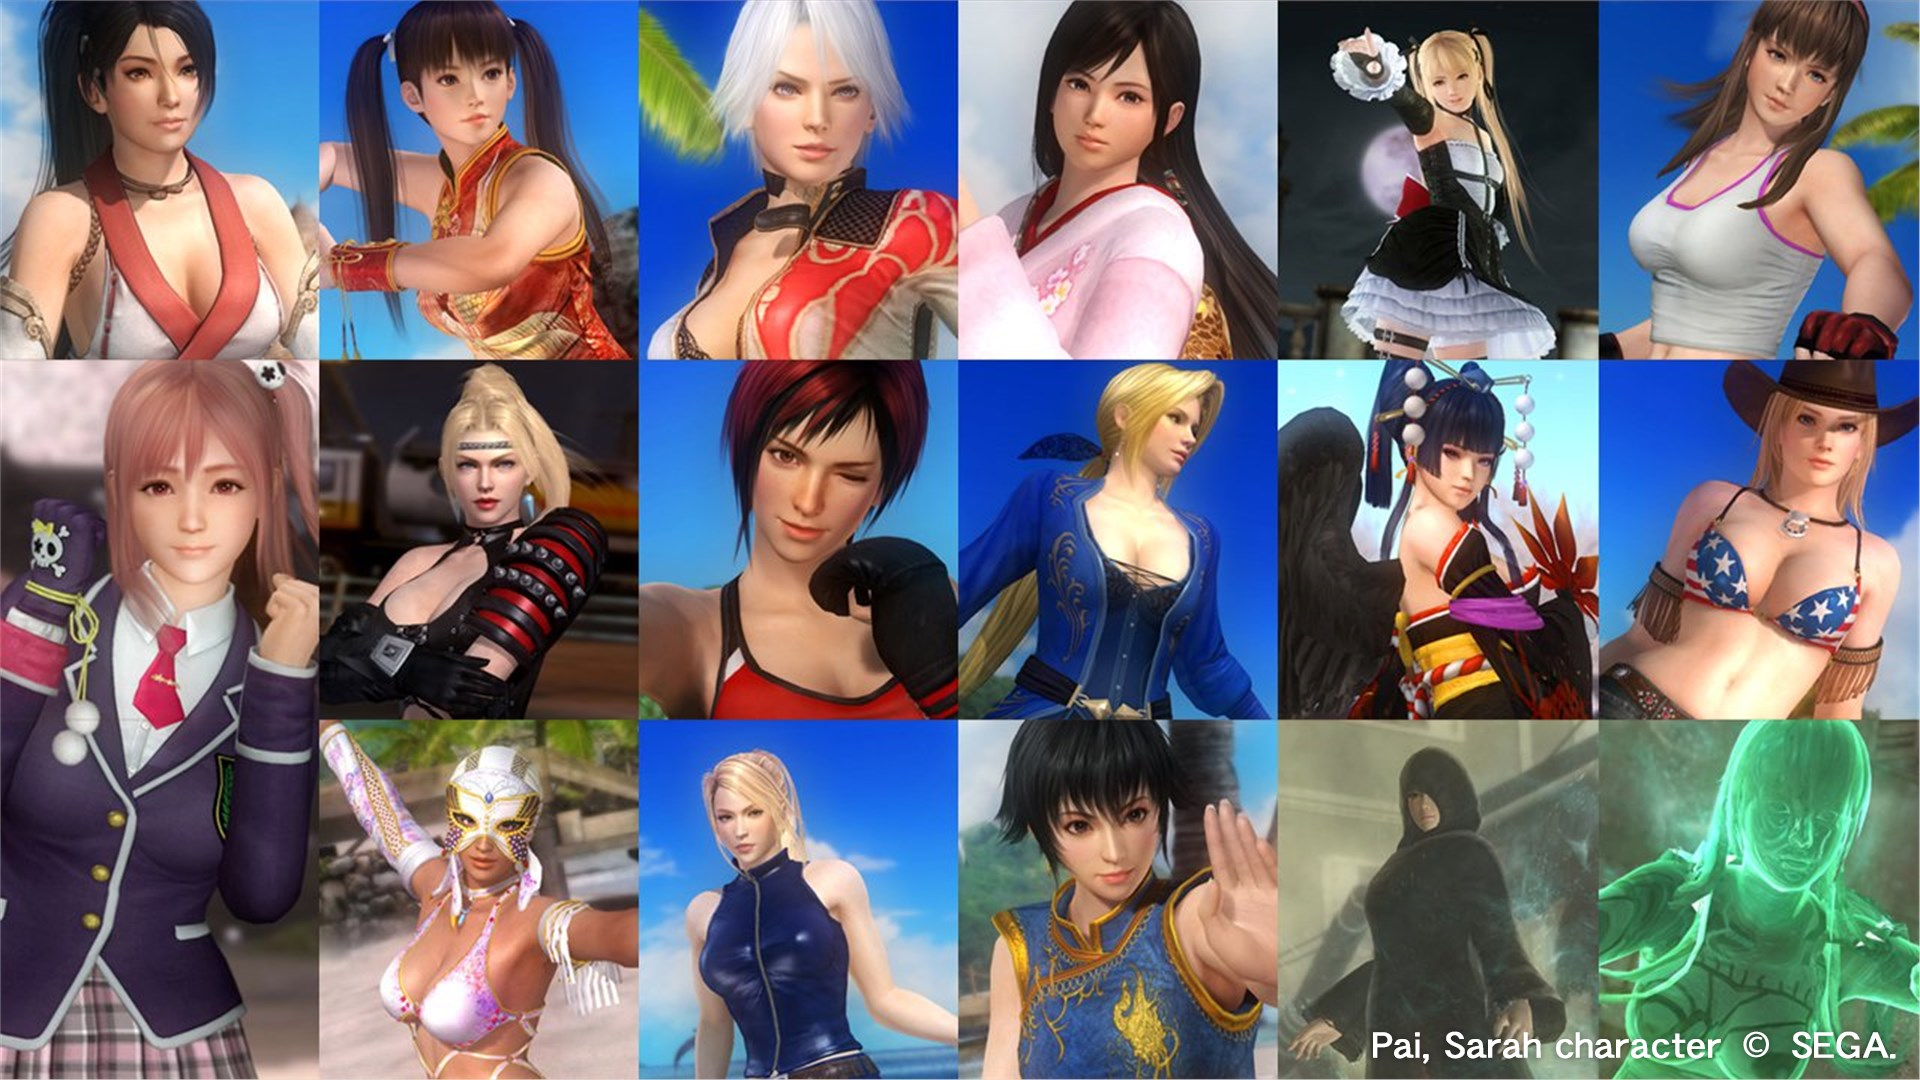 DOA5LR: Core Fighters - Female Fighters Set